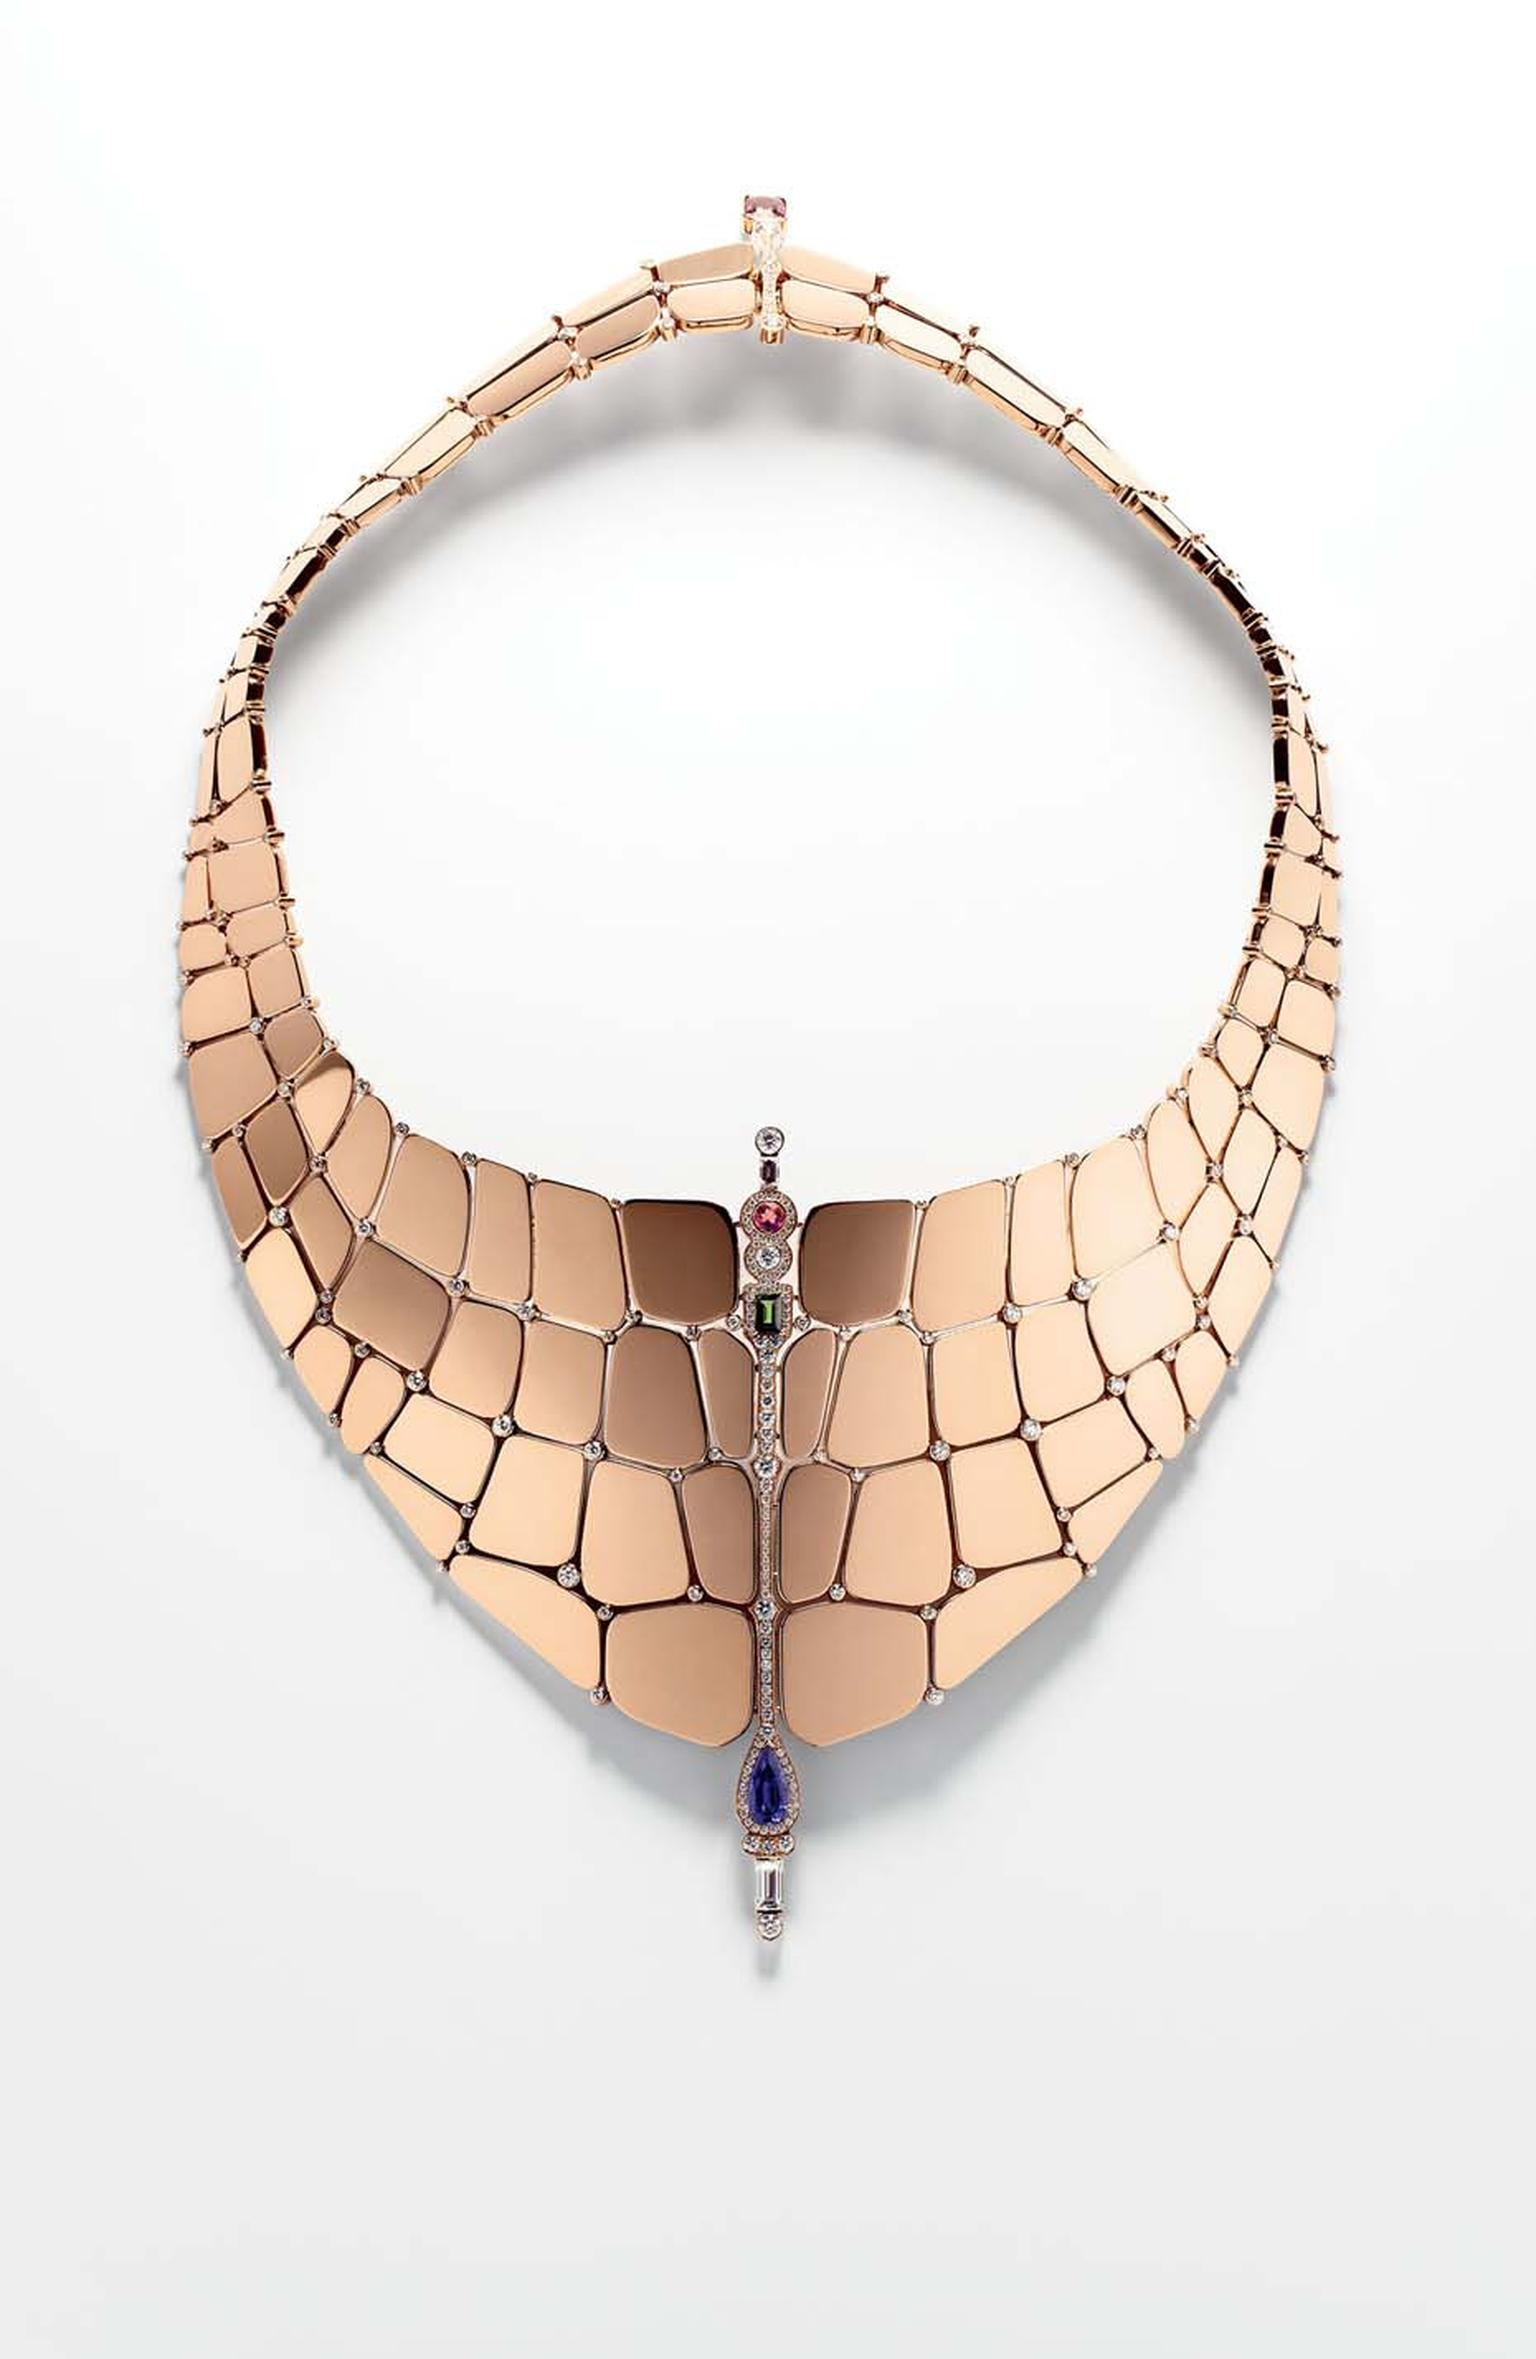 Hermès Niloticus necklace in rose gold, diamonds and coloured stones.